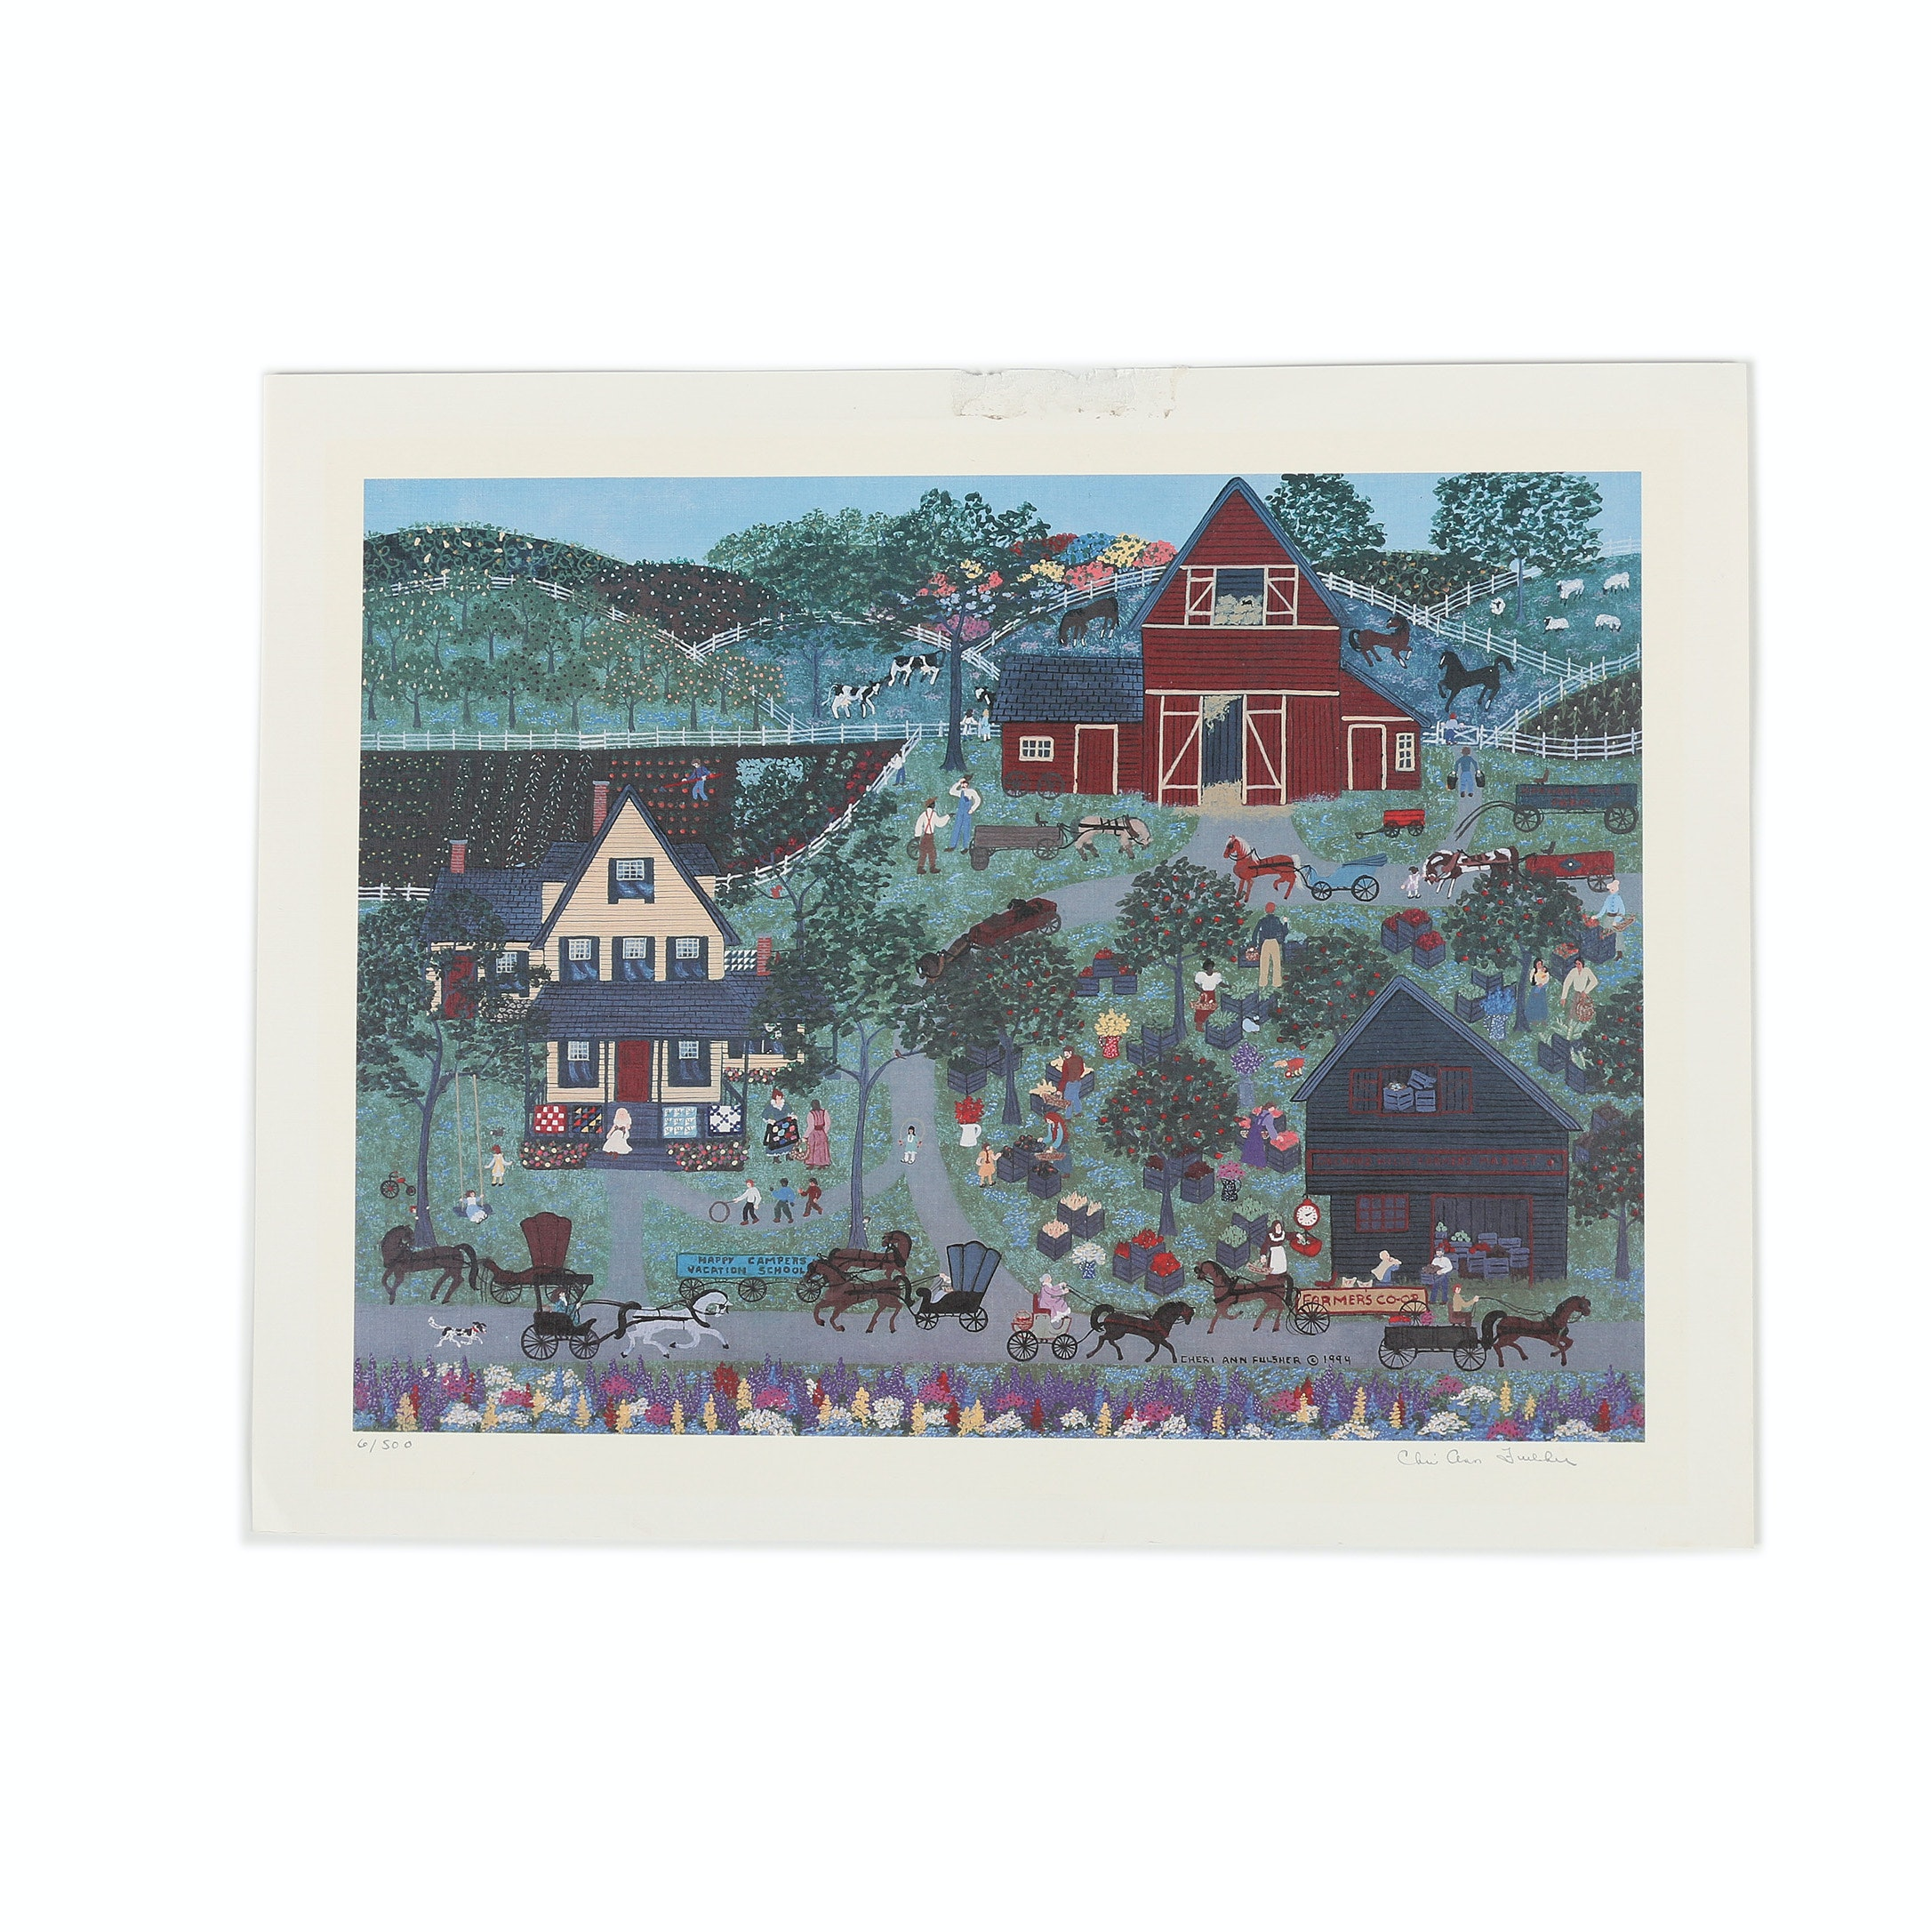 Cheri Ann Fulsher Limited Edition Offset Lithograph of a Country Town